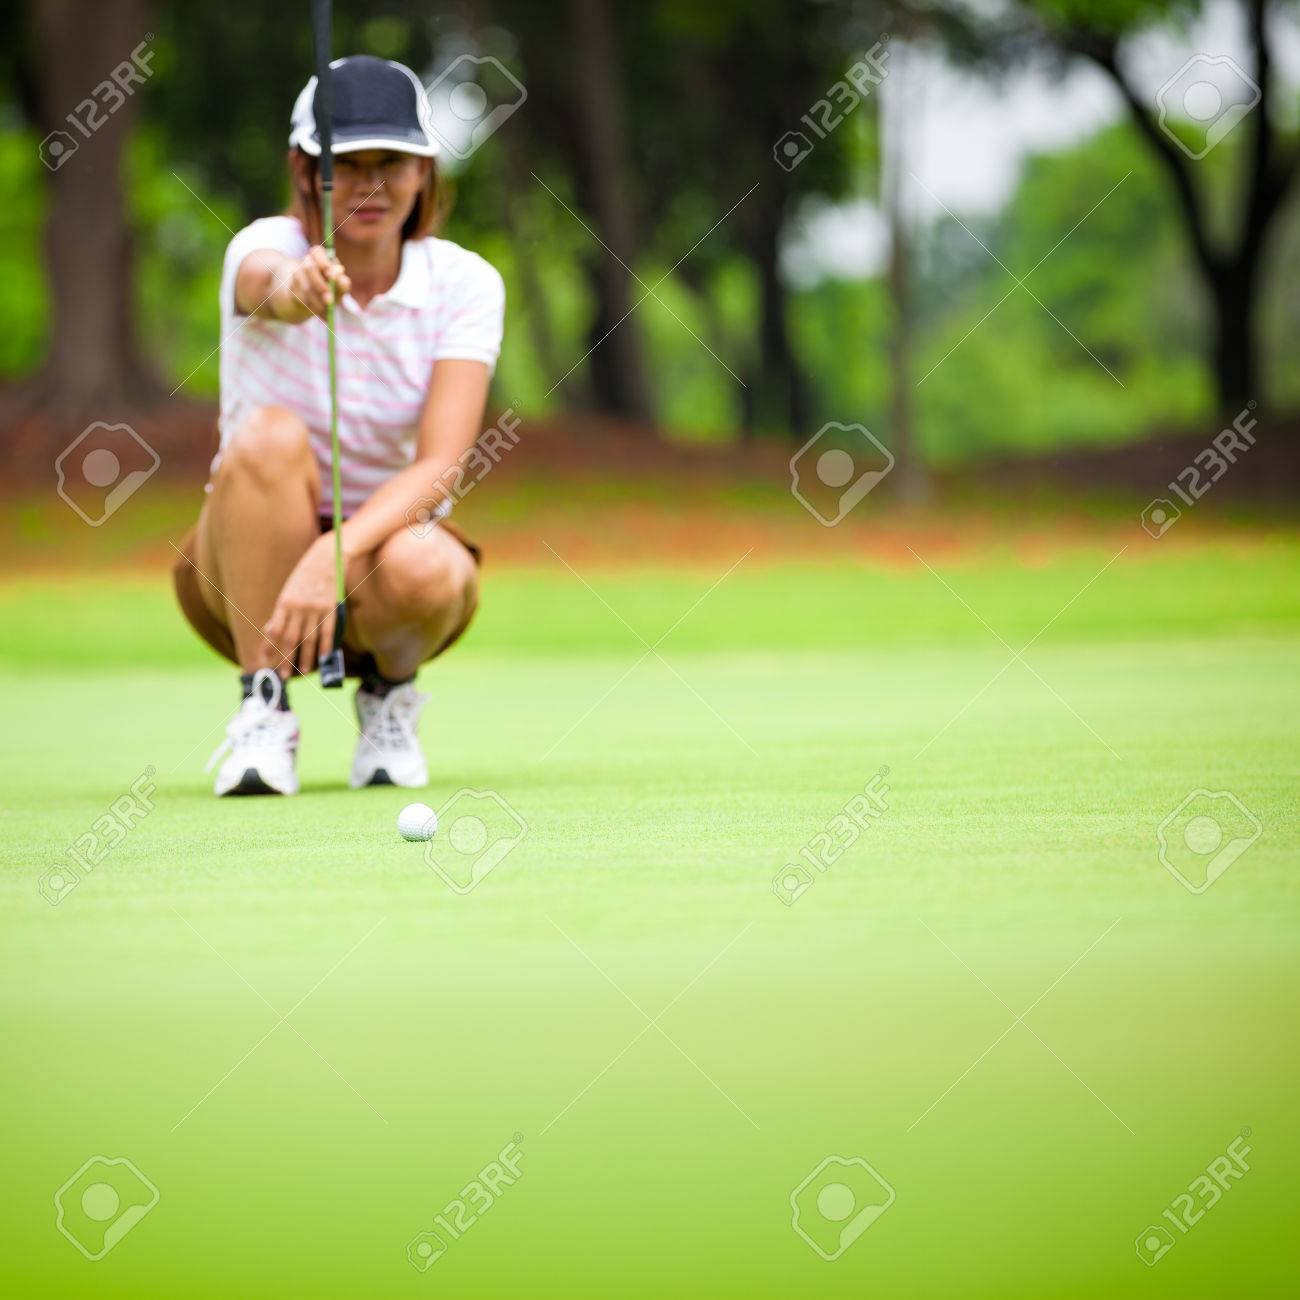 Female golf player with putter squatting to analyze the green at golf course, Select focus at golf ball Stock Photo - 26584394